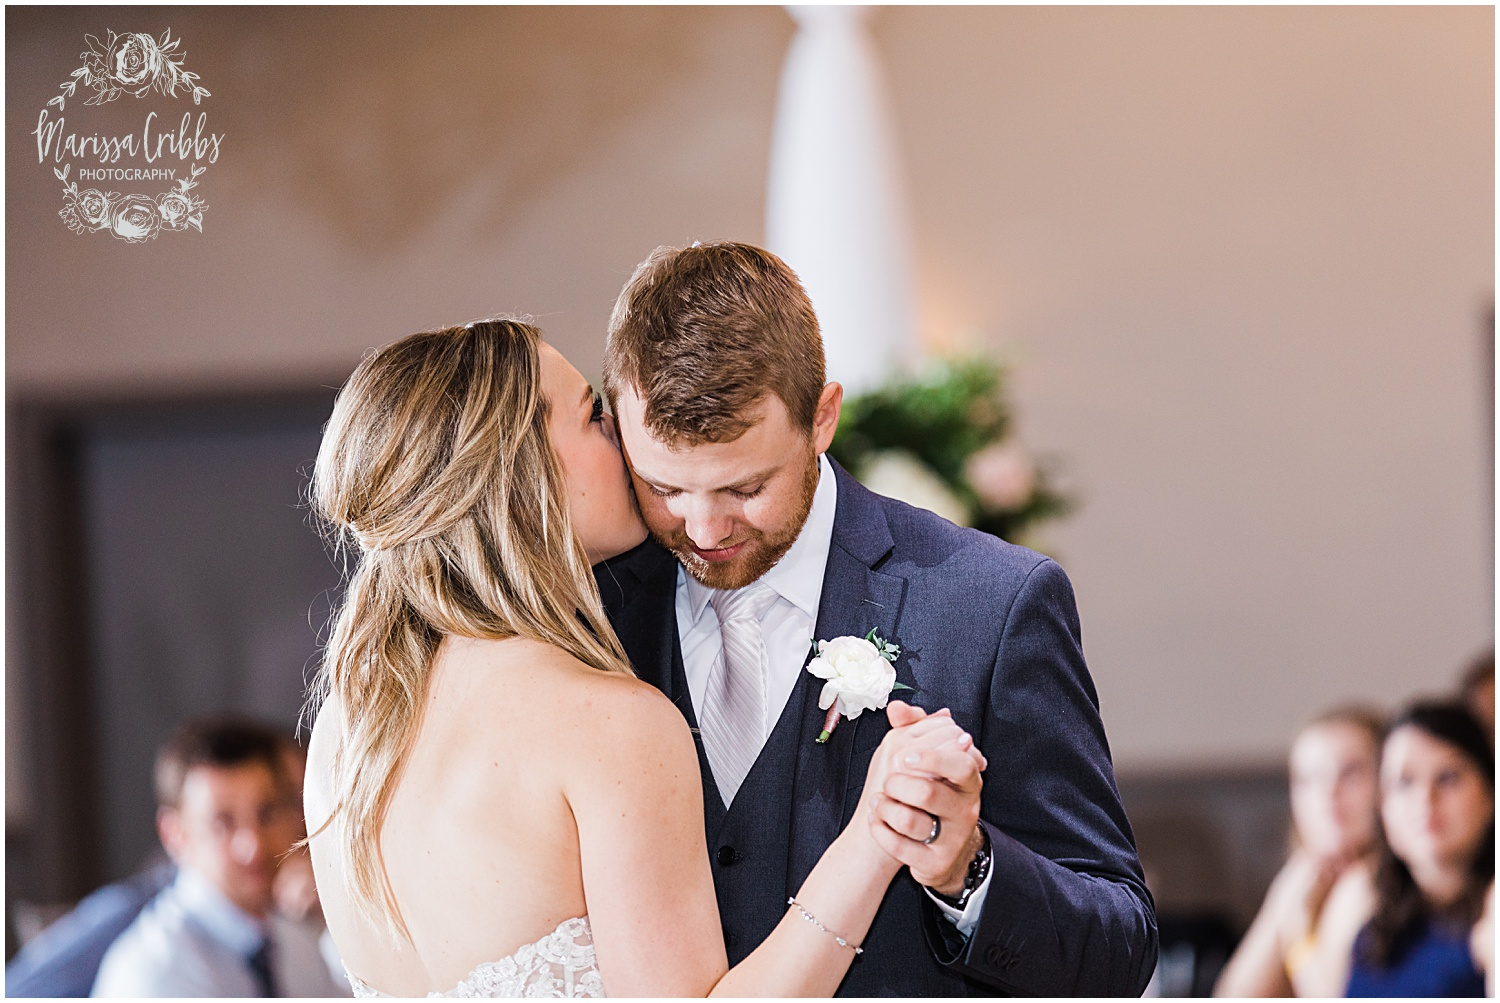 BEKAH & CHRIS MARRIED BLOG | 1890 EVENT SPACE WEDDING | MARISSA CRIBBS PHOTOGRAPHY_8427.jpg